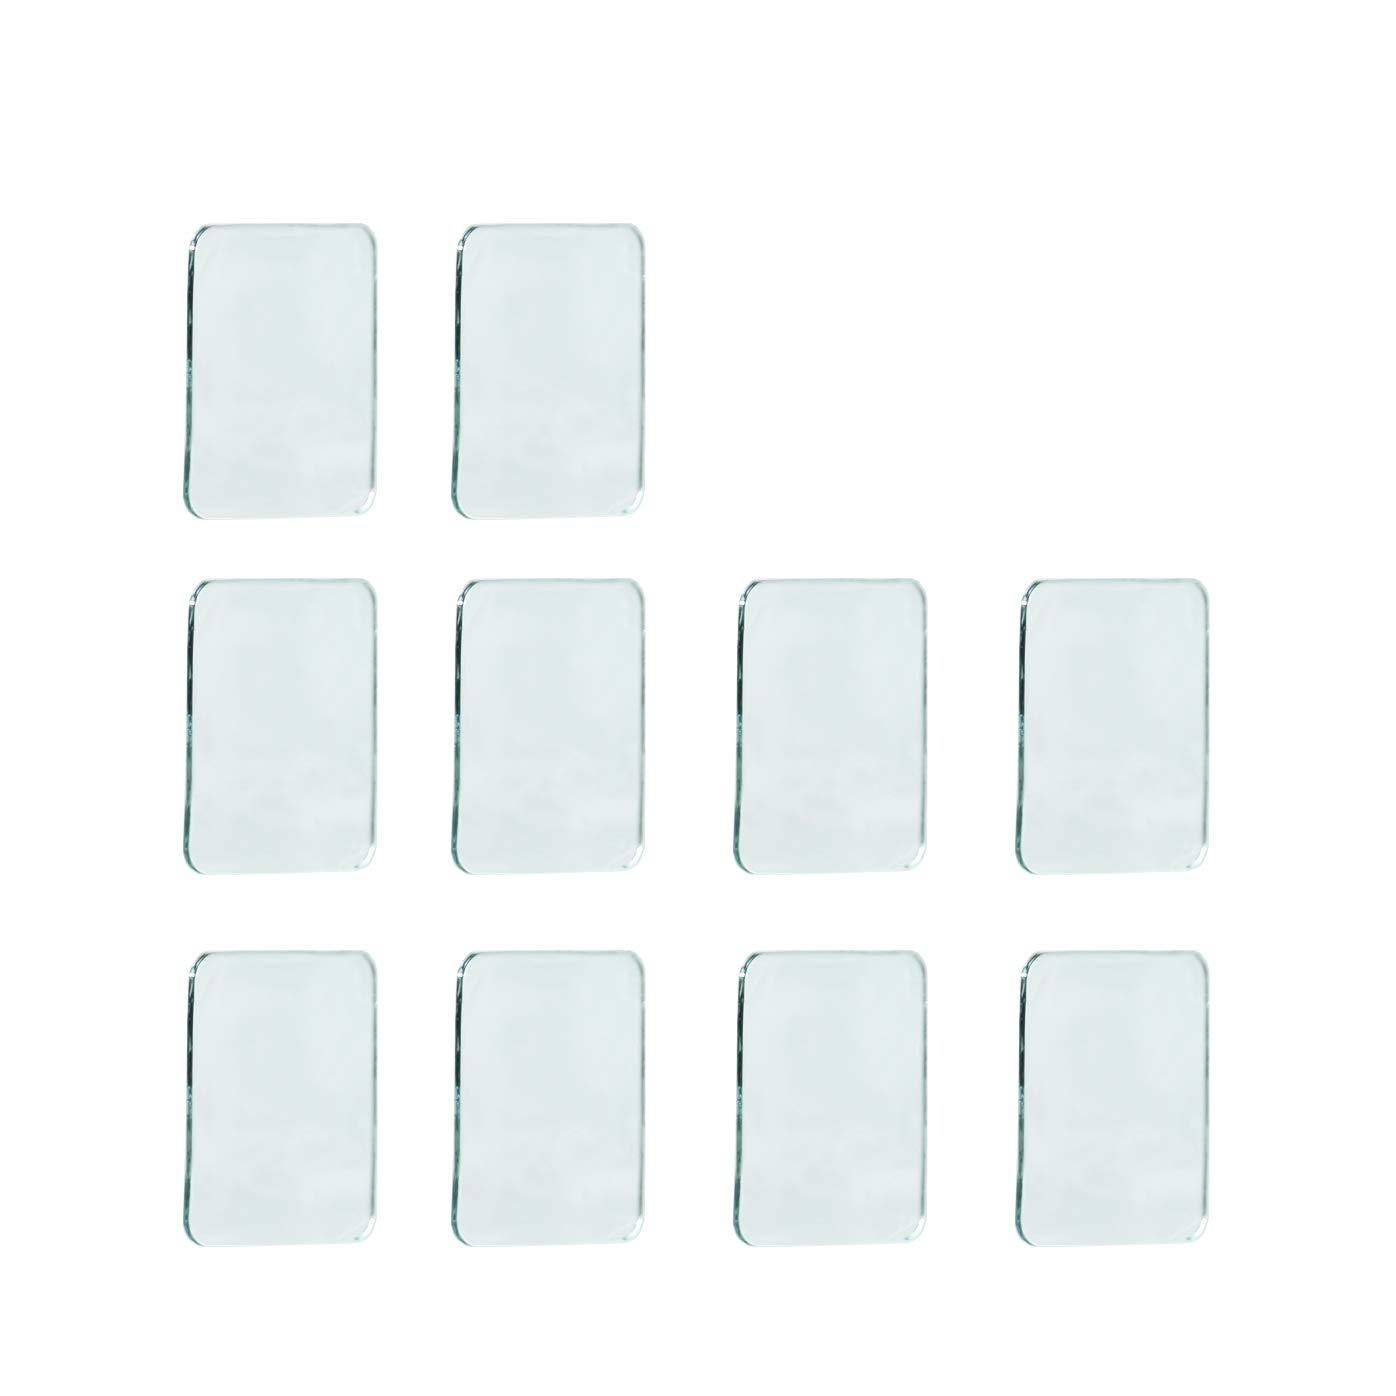 Sungrace 10 Pack Anti-Slip Fixate Sticky Cell Pads, Stick to Glass, Mirrors, Whiteboards, Metal, Kitchen Cabinets, Tile, Car And Other Surfaces(Square, Clear)